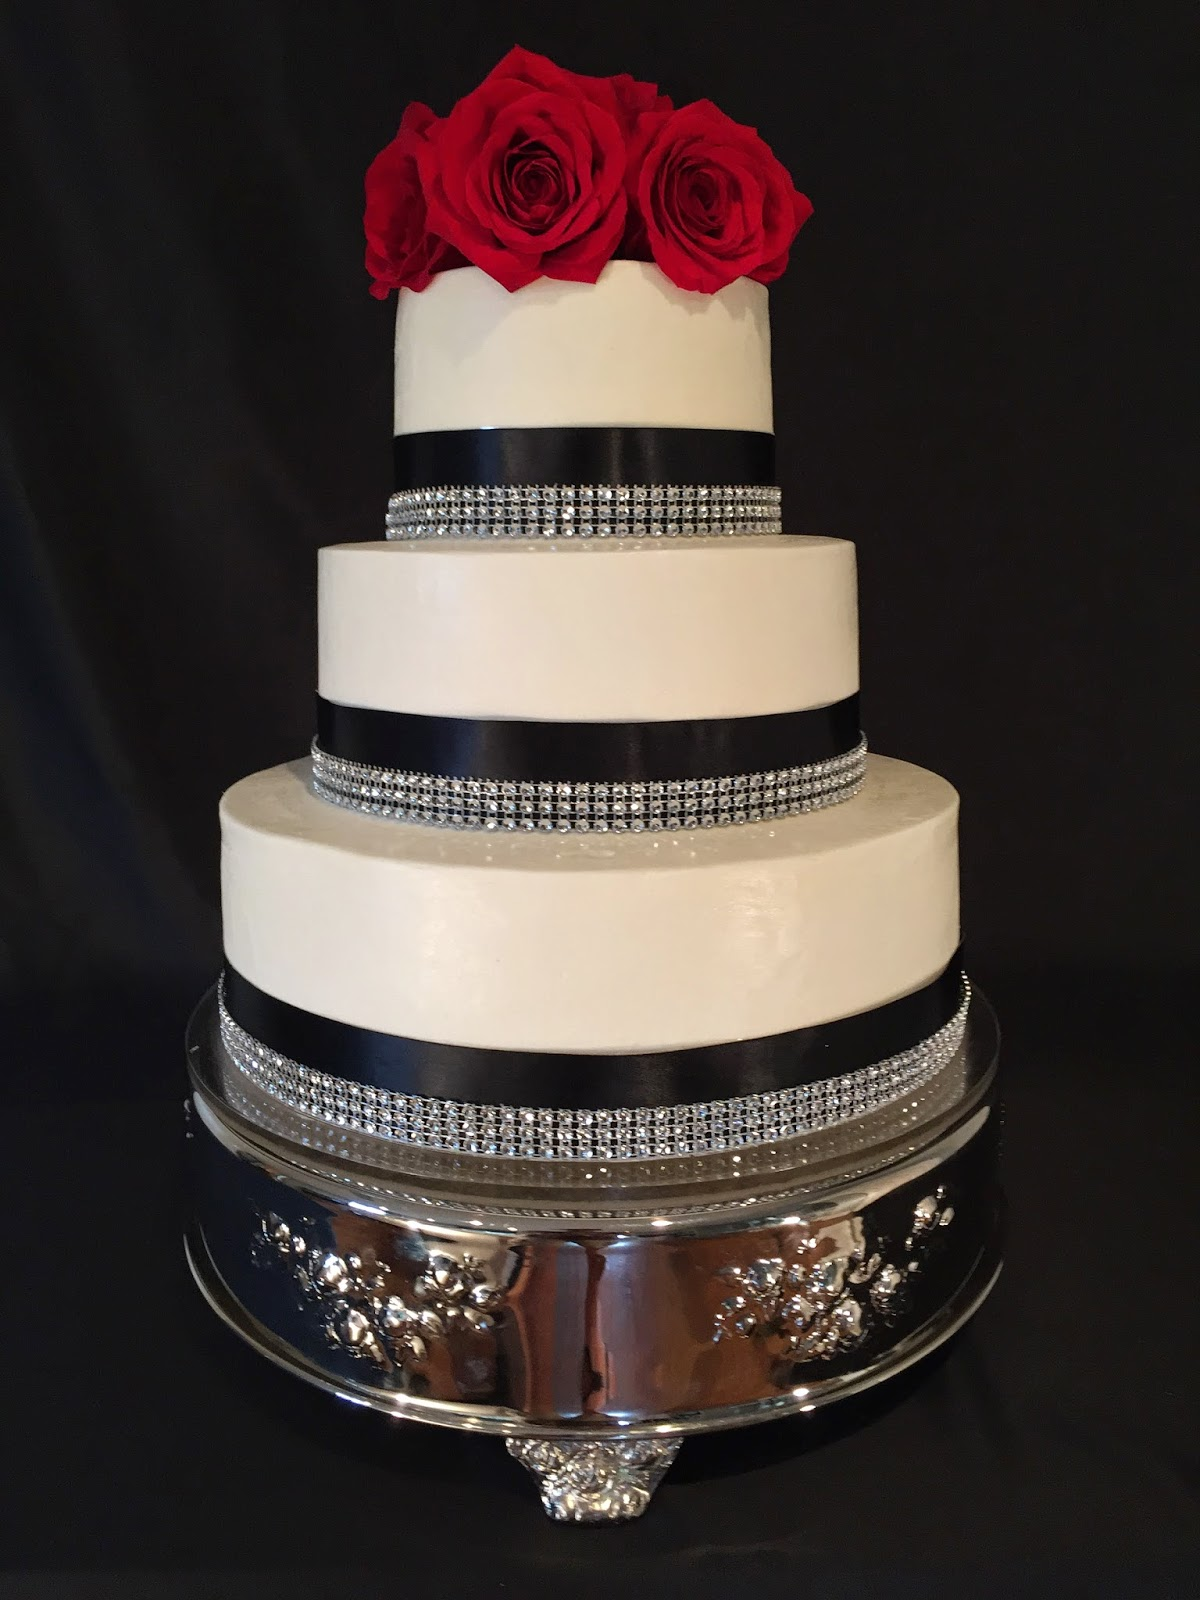 Penelope s Perfections Blog  8 Most Popular Wedding Cake Flavors Black Ribbon Wedding Cake with Bling